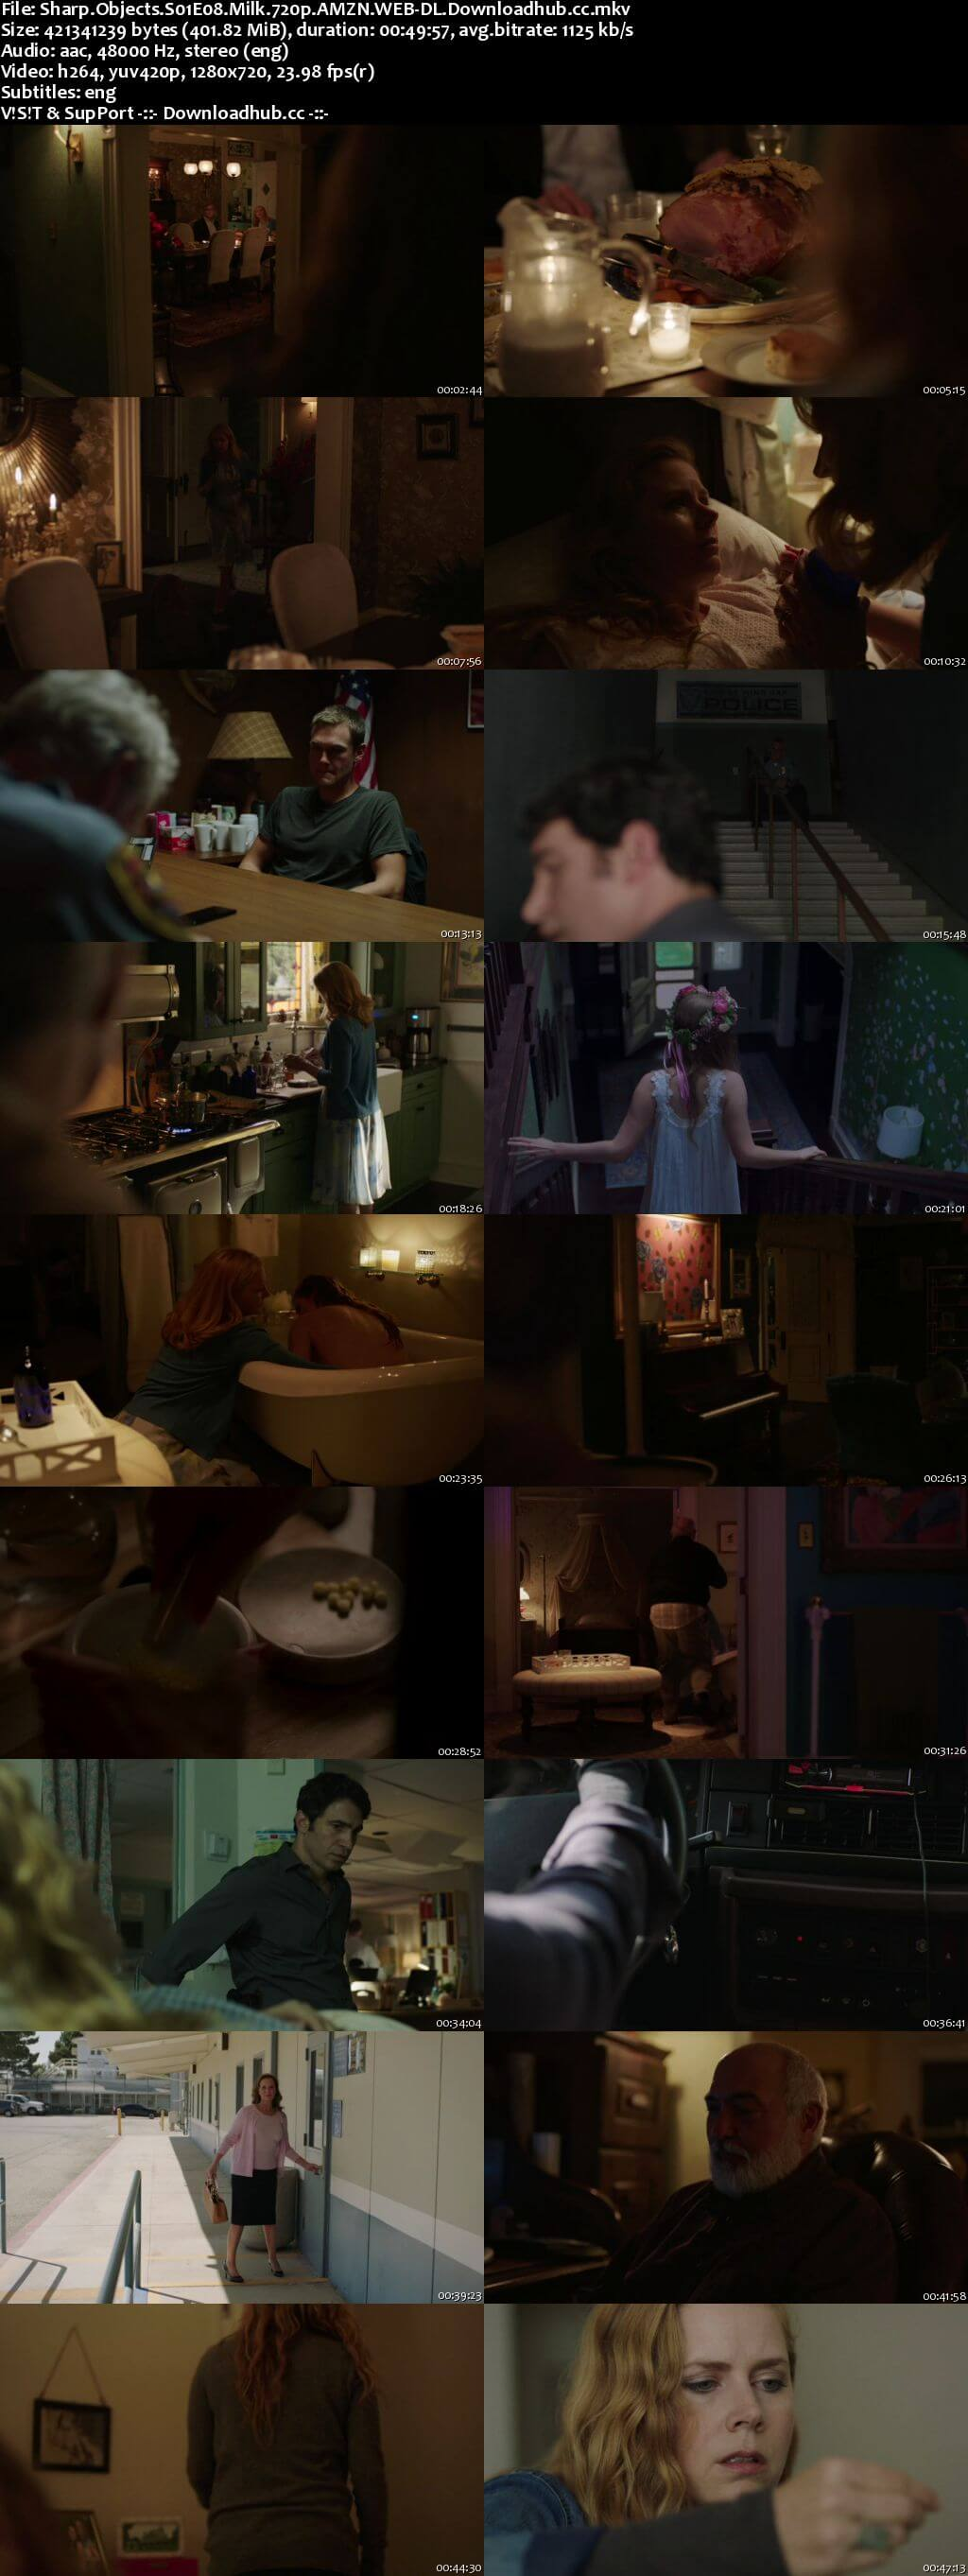 Sharp Objects S01E08 400MB WEB-DL 720p ESubs